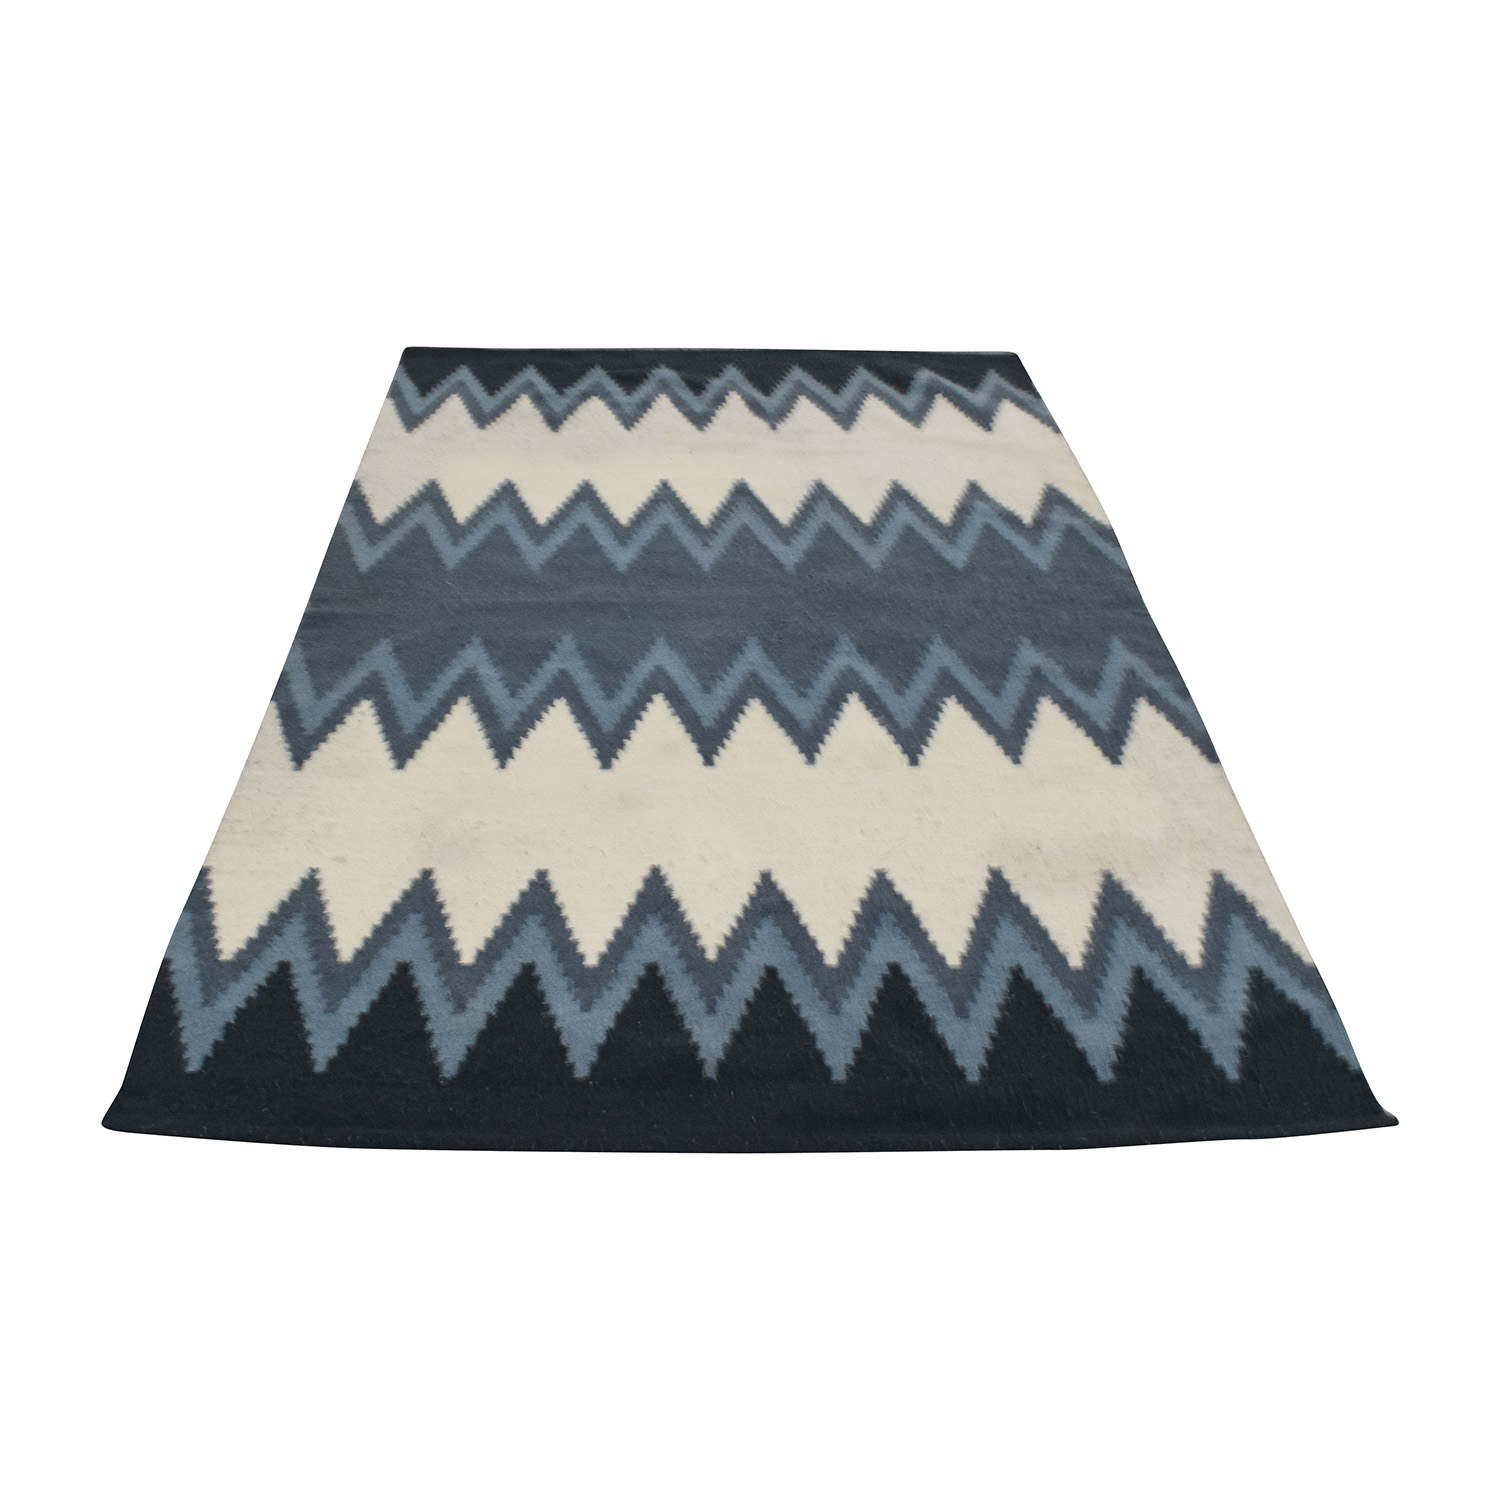 West Elm Blue and Beige Rug / Decor